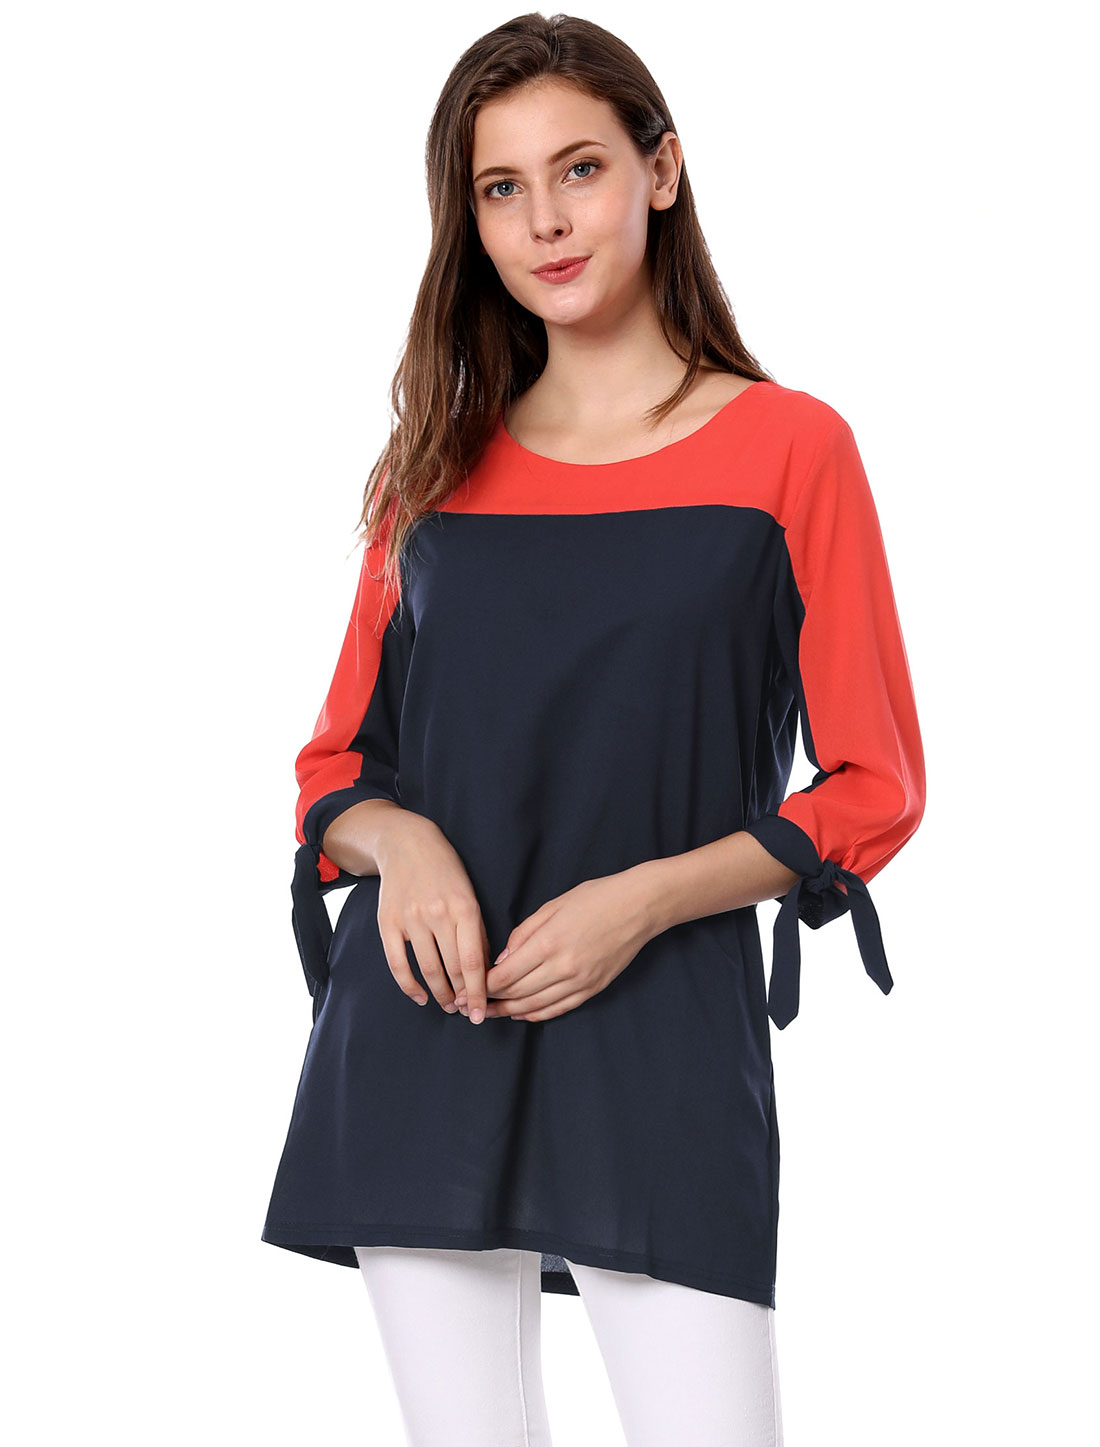 Women NEW Scoop Neck Contrast Color Oxford-Blue Tunic Top M